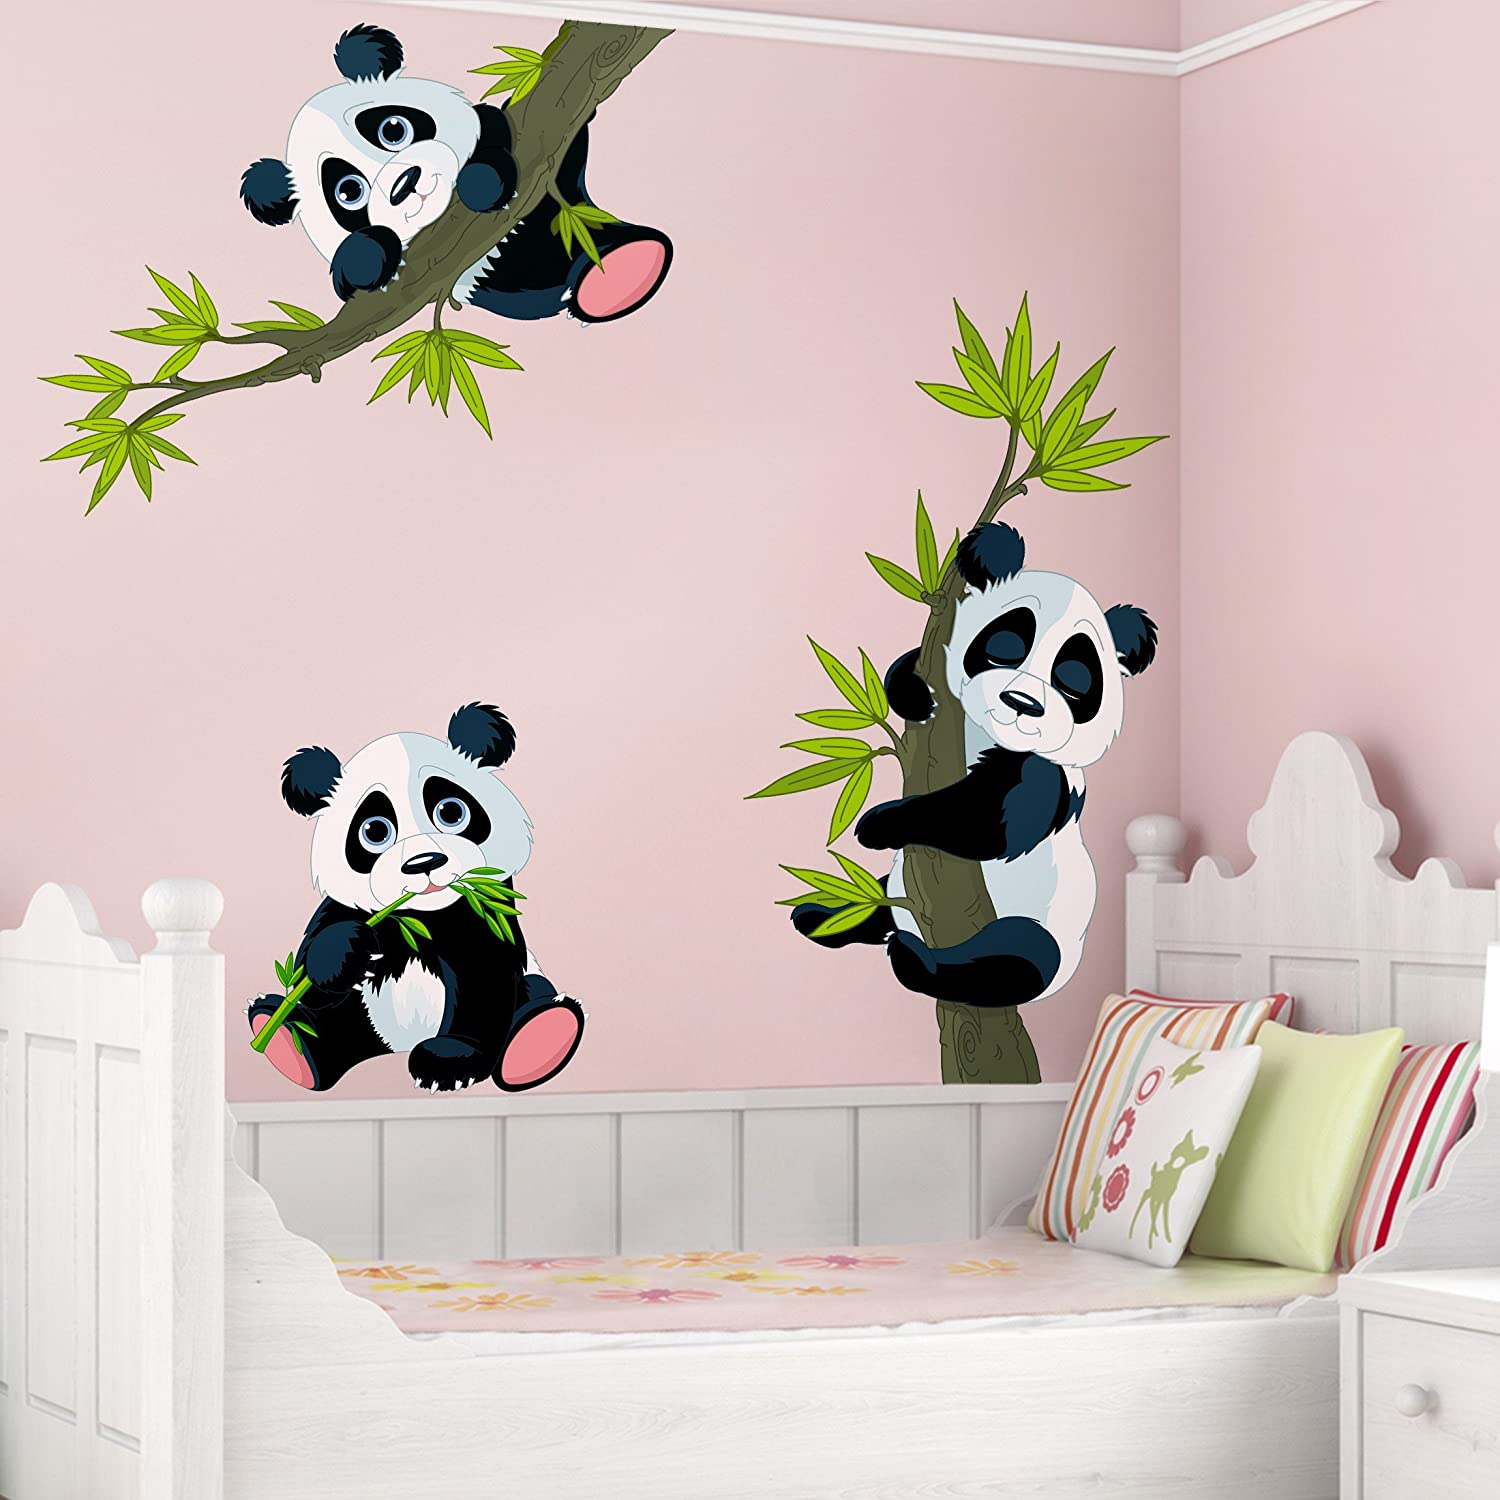 Attractive Wandtattoo Bilder Ideas Of Imaging Wand Aufkleber Panda Bär Set, Kinderzimmer,